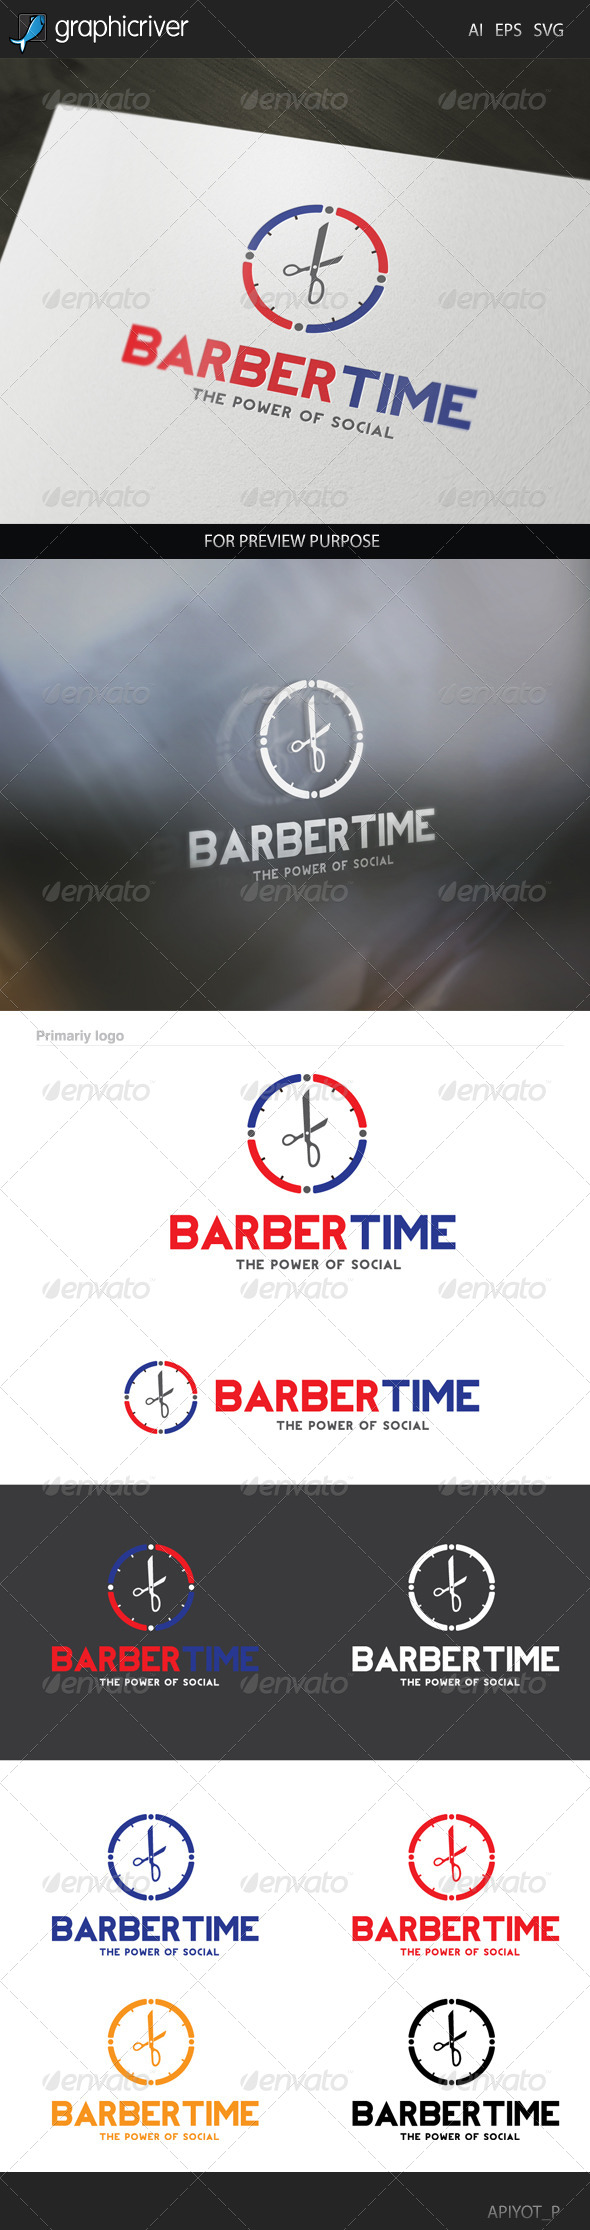 GraphicRiver Barber Time Logo 8320030